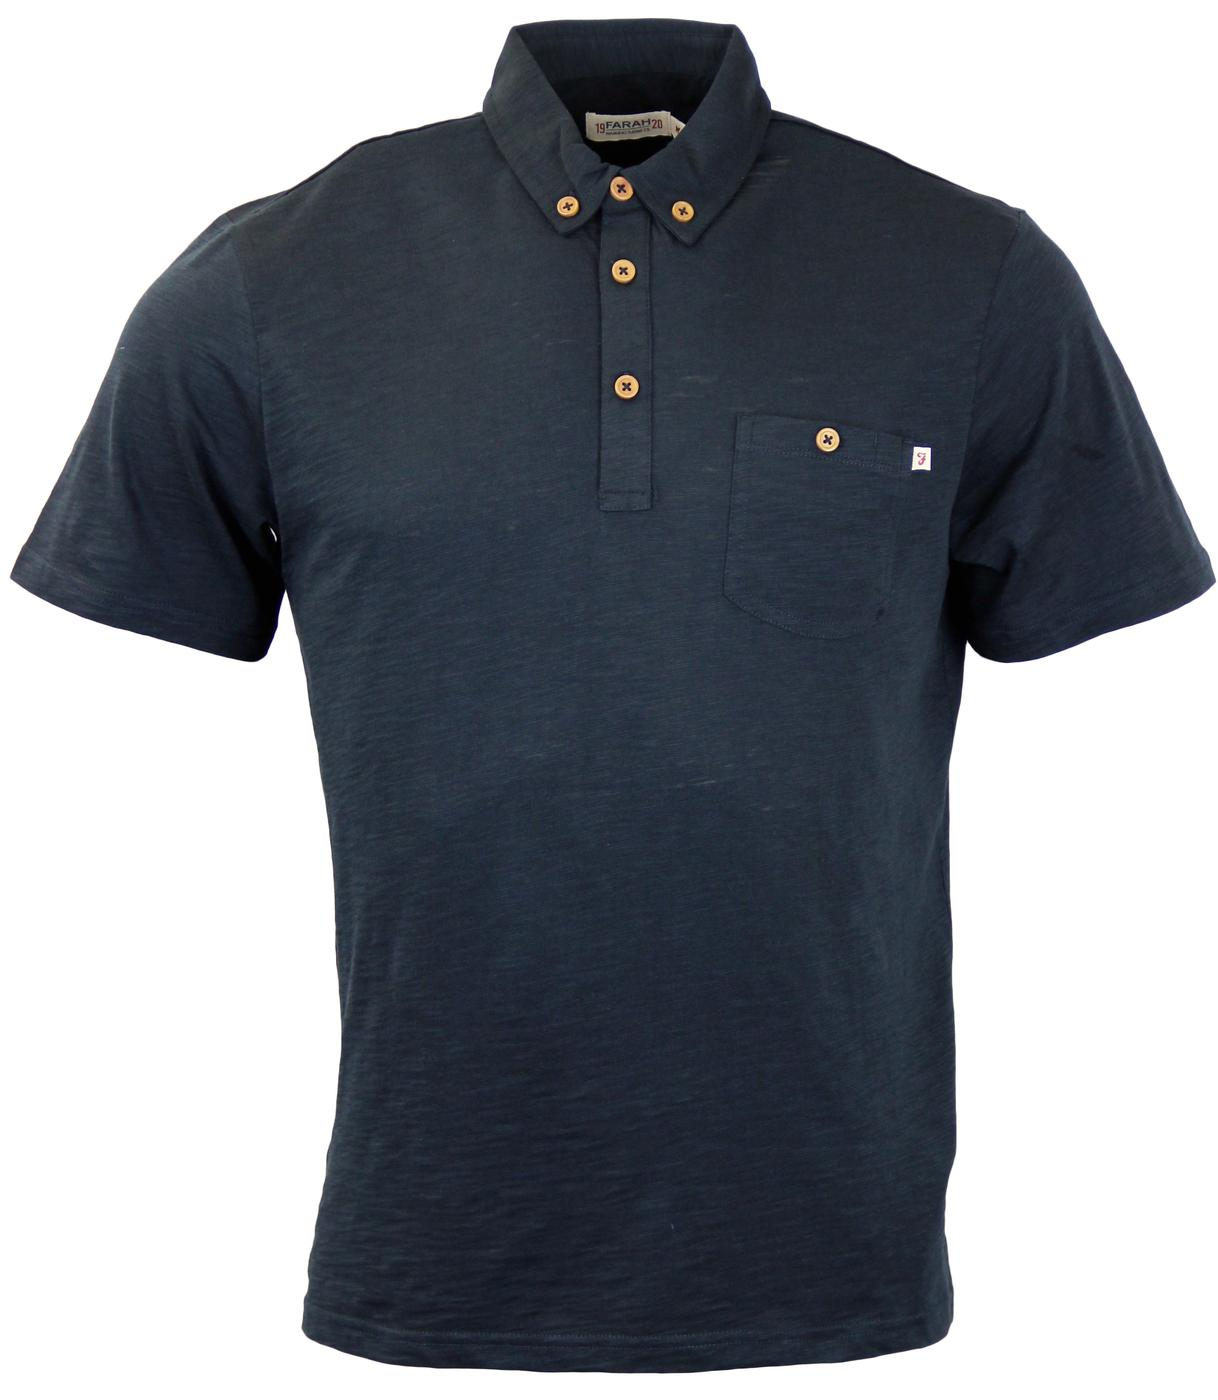 Stapelford FARAH 1920 Mod S/S Textured Polo Top N